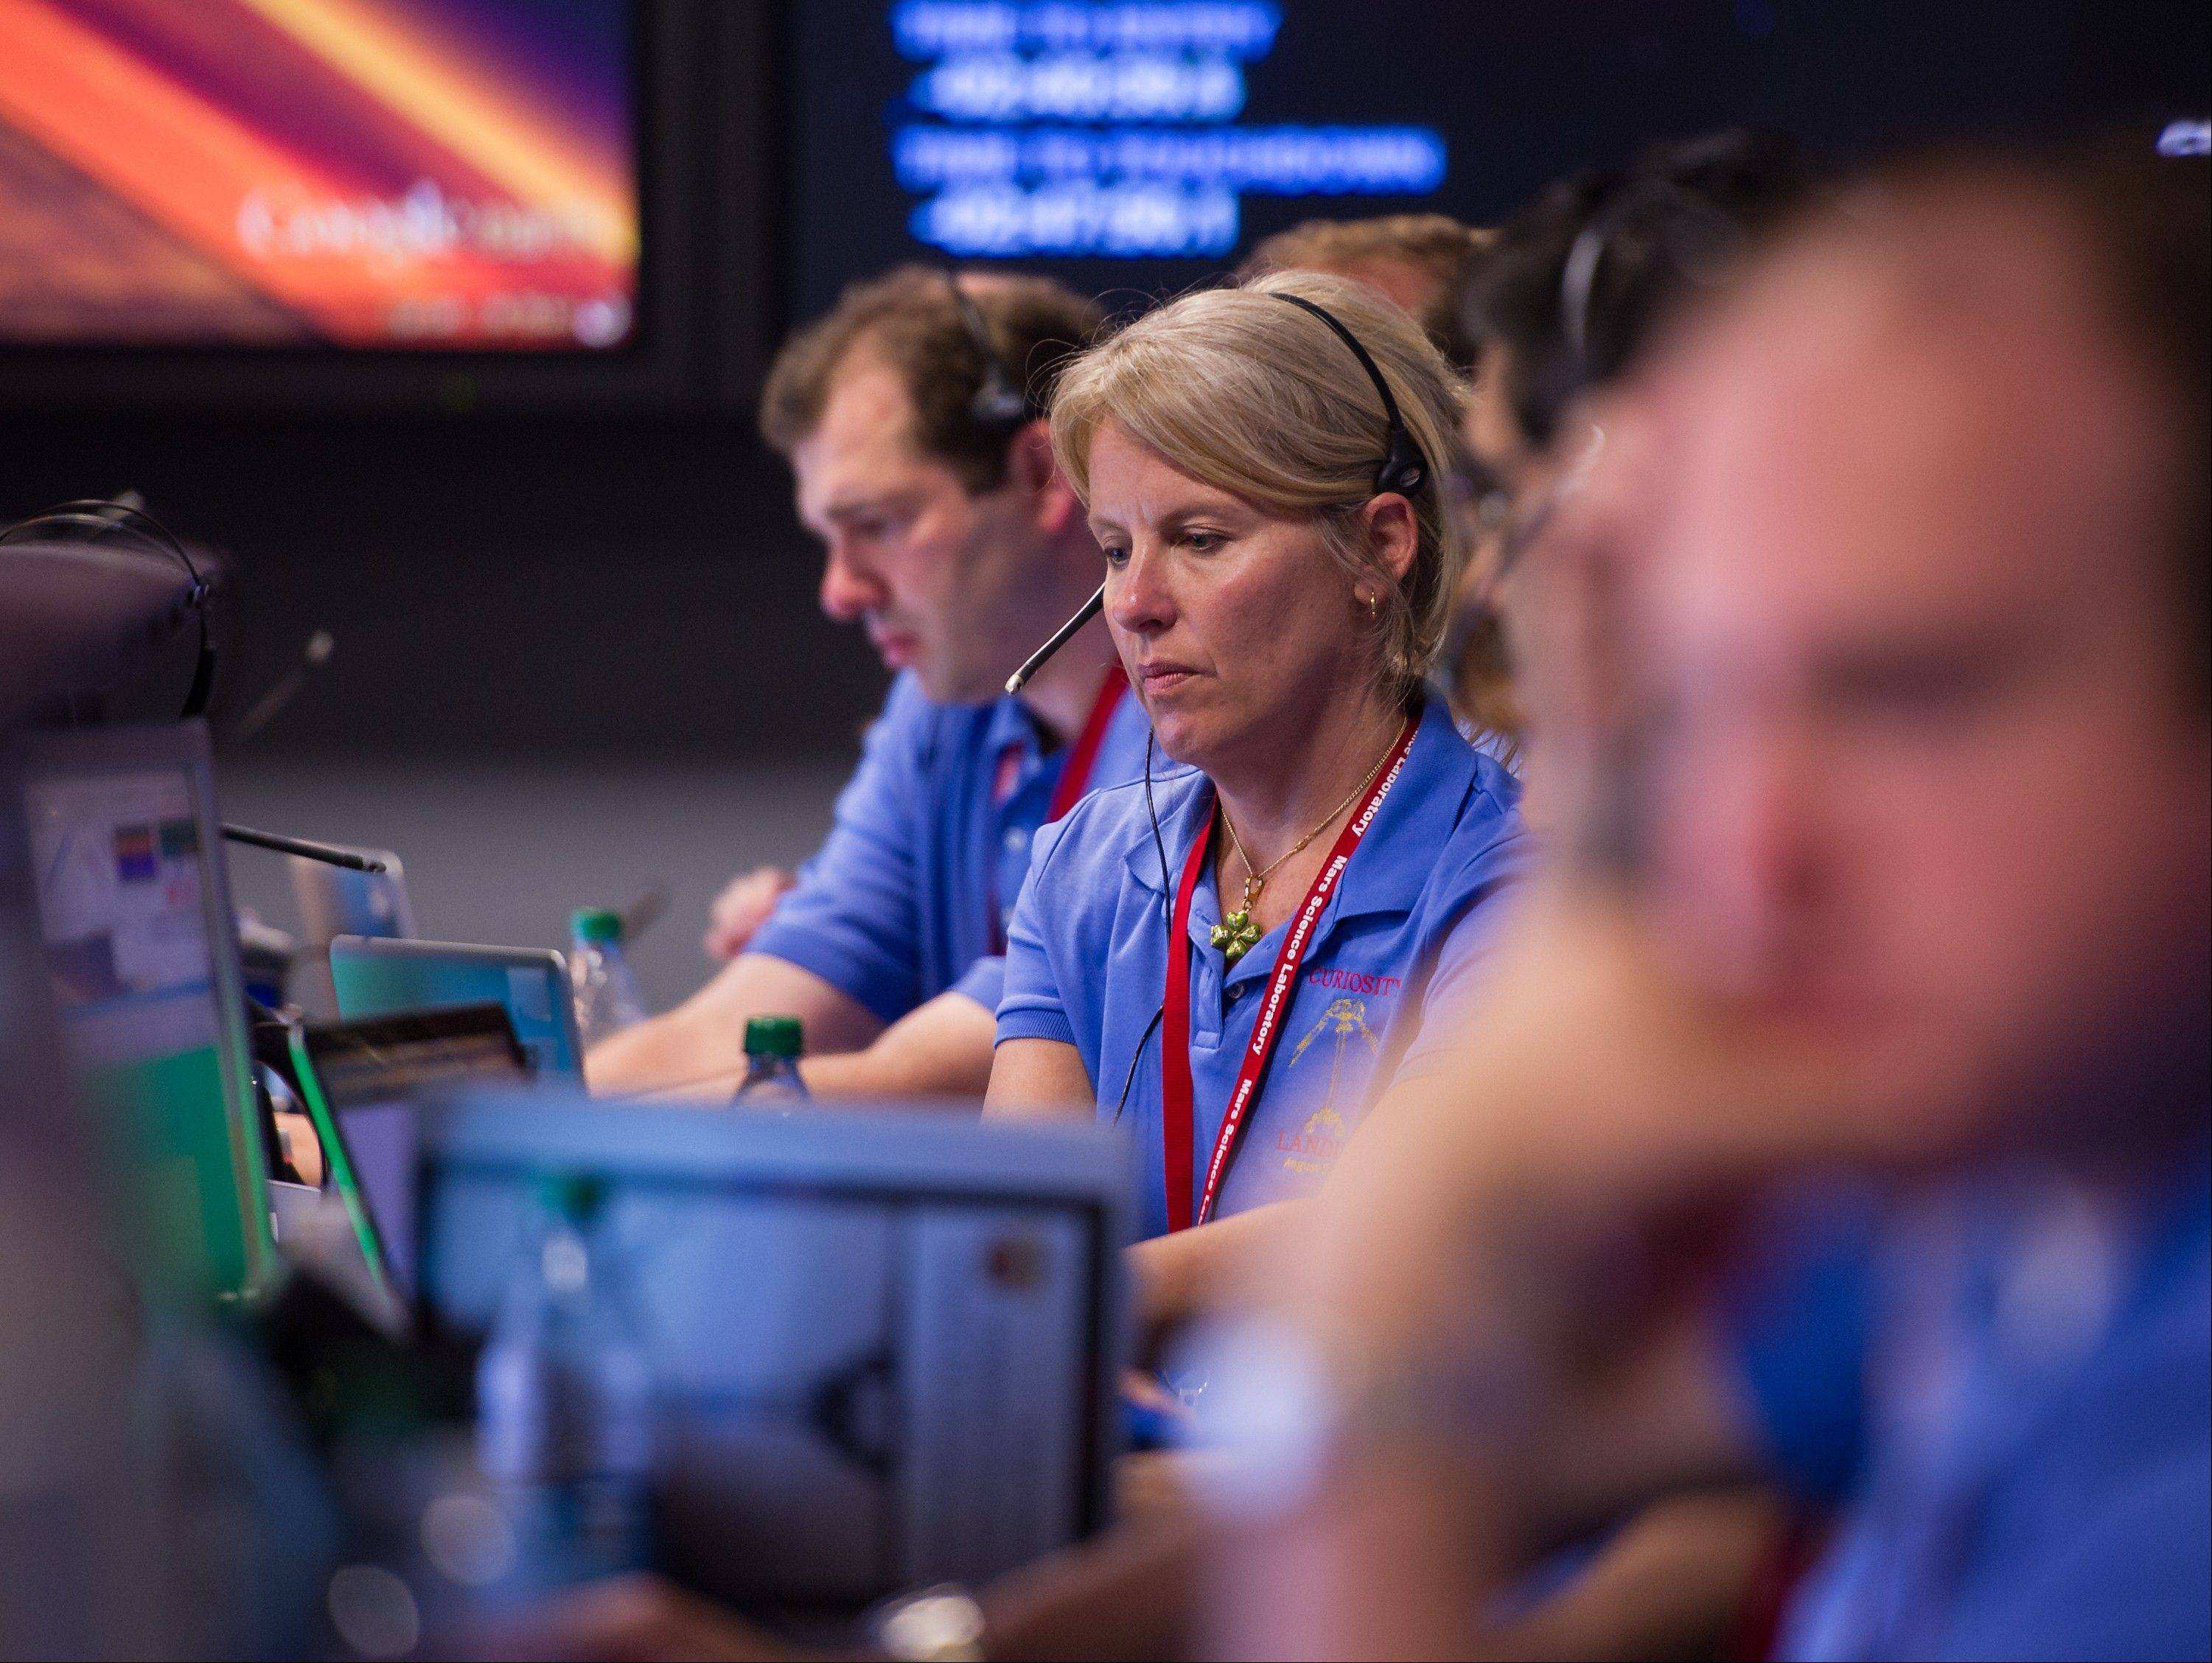 Members of the Mars Science Laboratory (MSL) team work in the MSL Mission Support Area Sunday at the Jet Propulsion Laboratory hours ahead of the planned landing of the Curiosity rover on Mars.